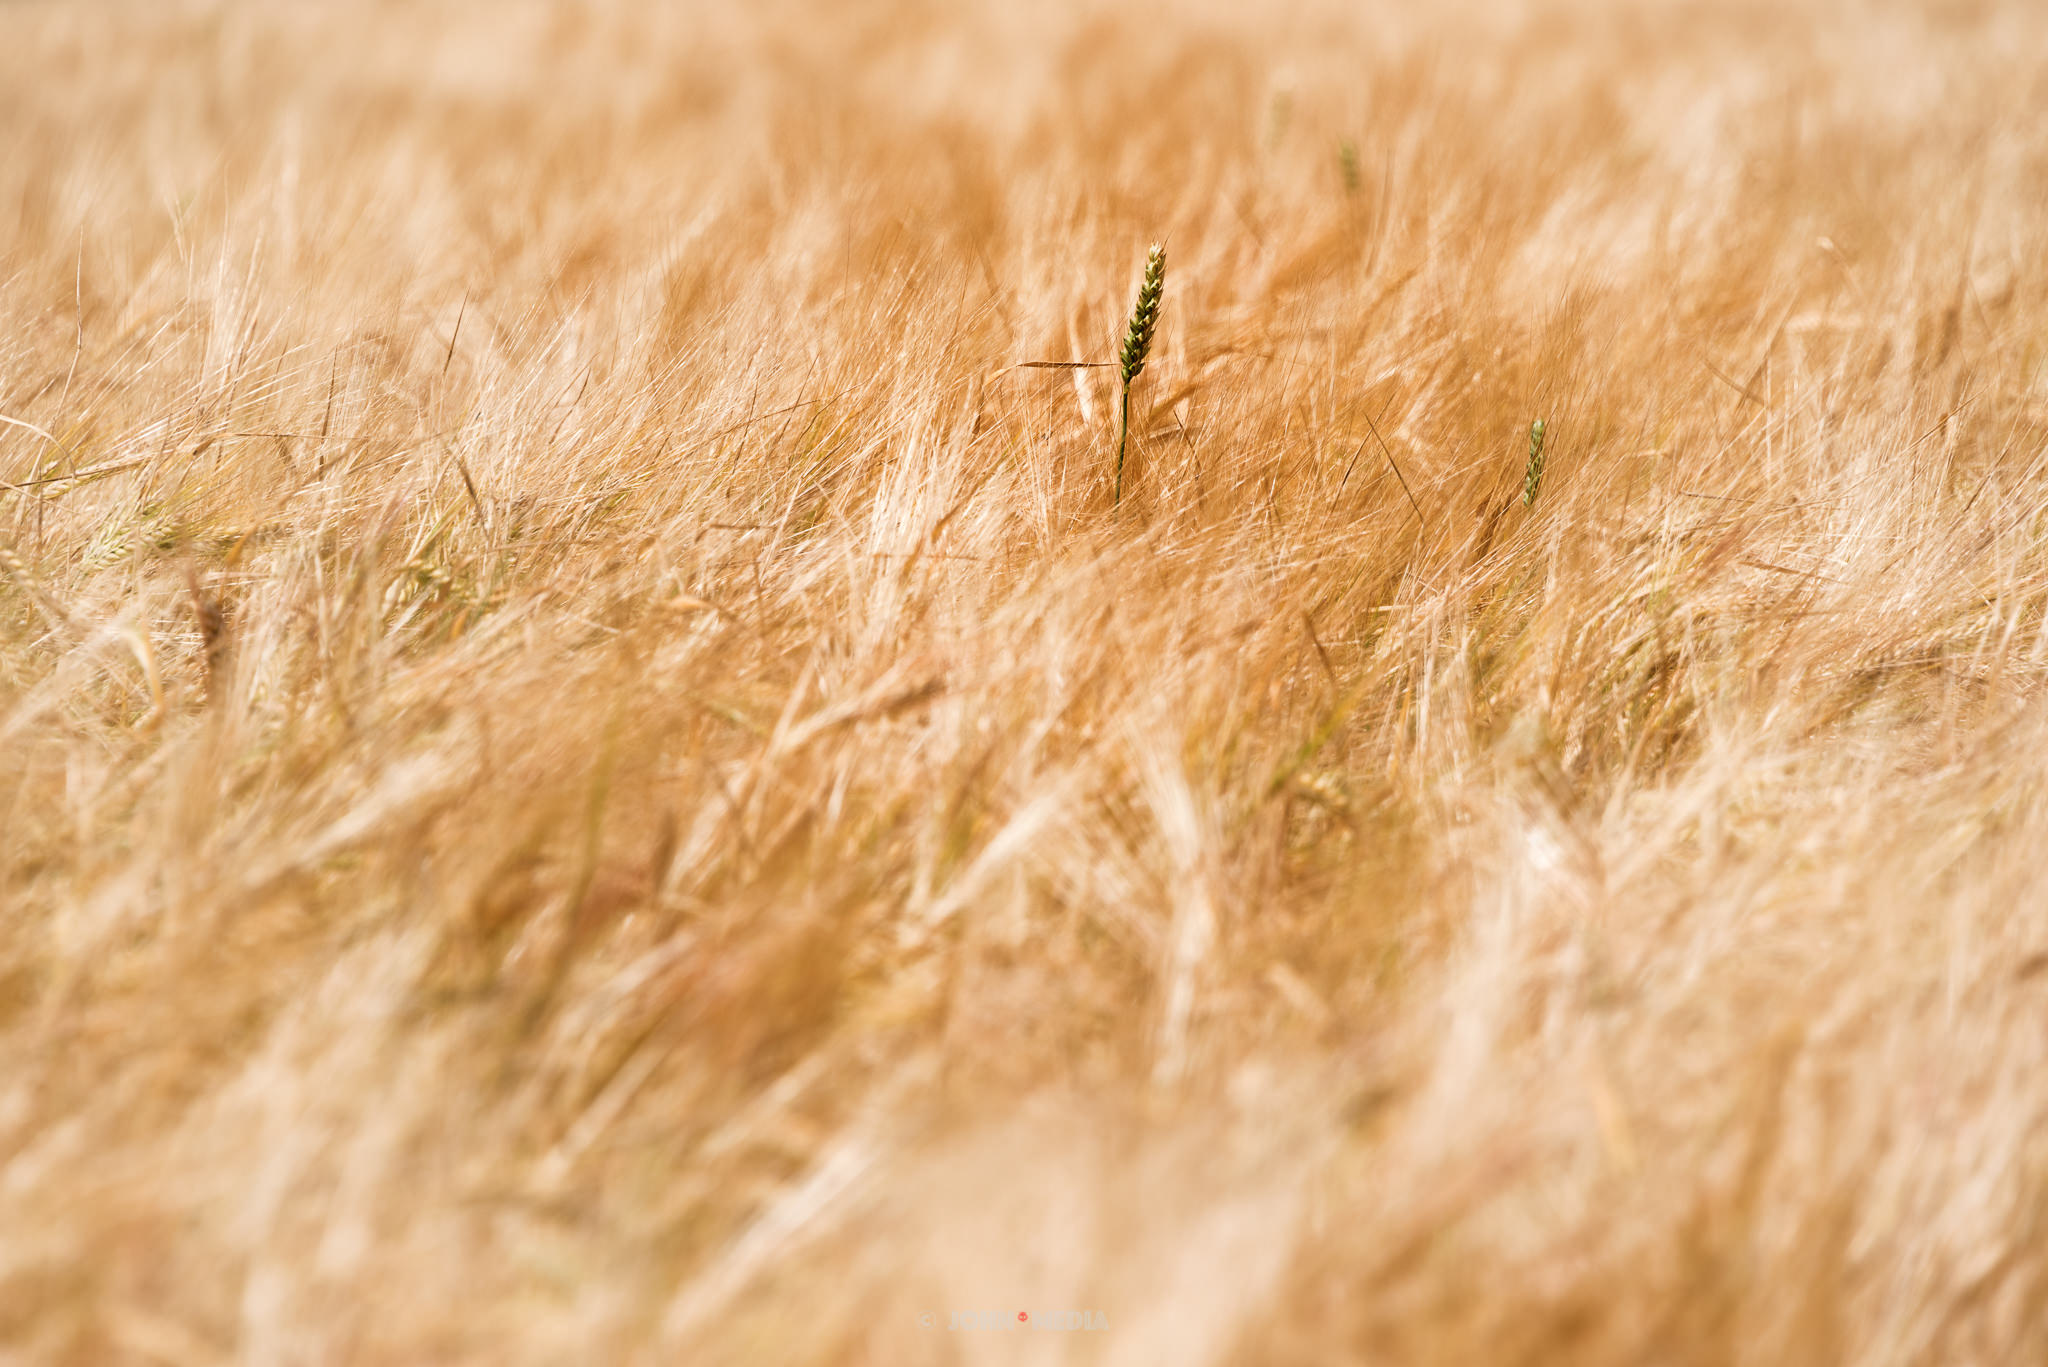 In the long grass